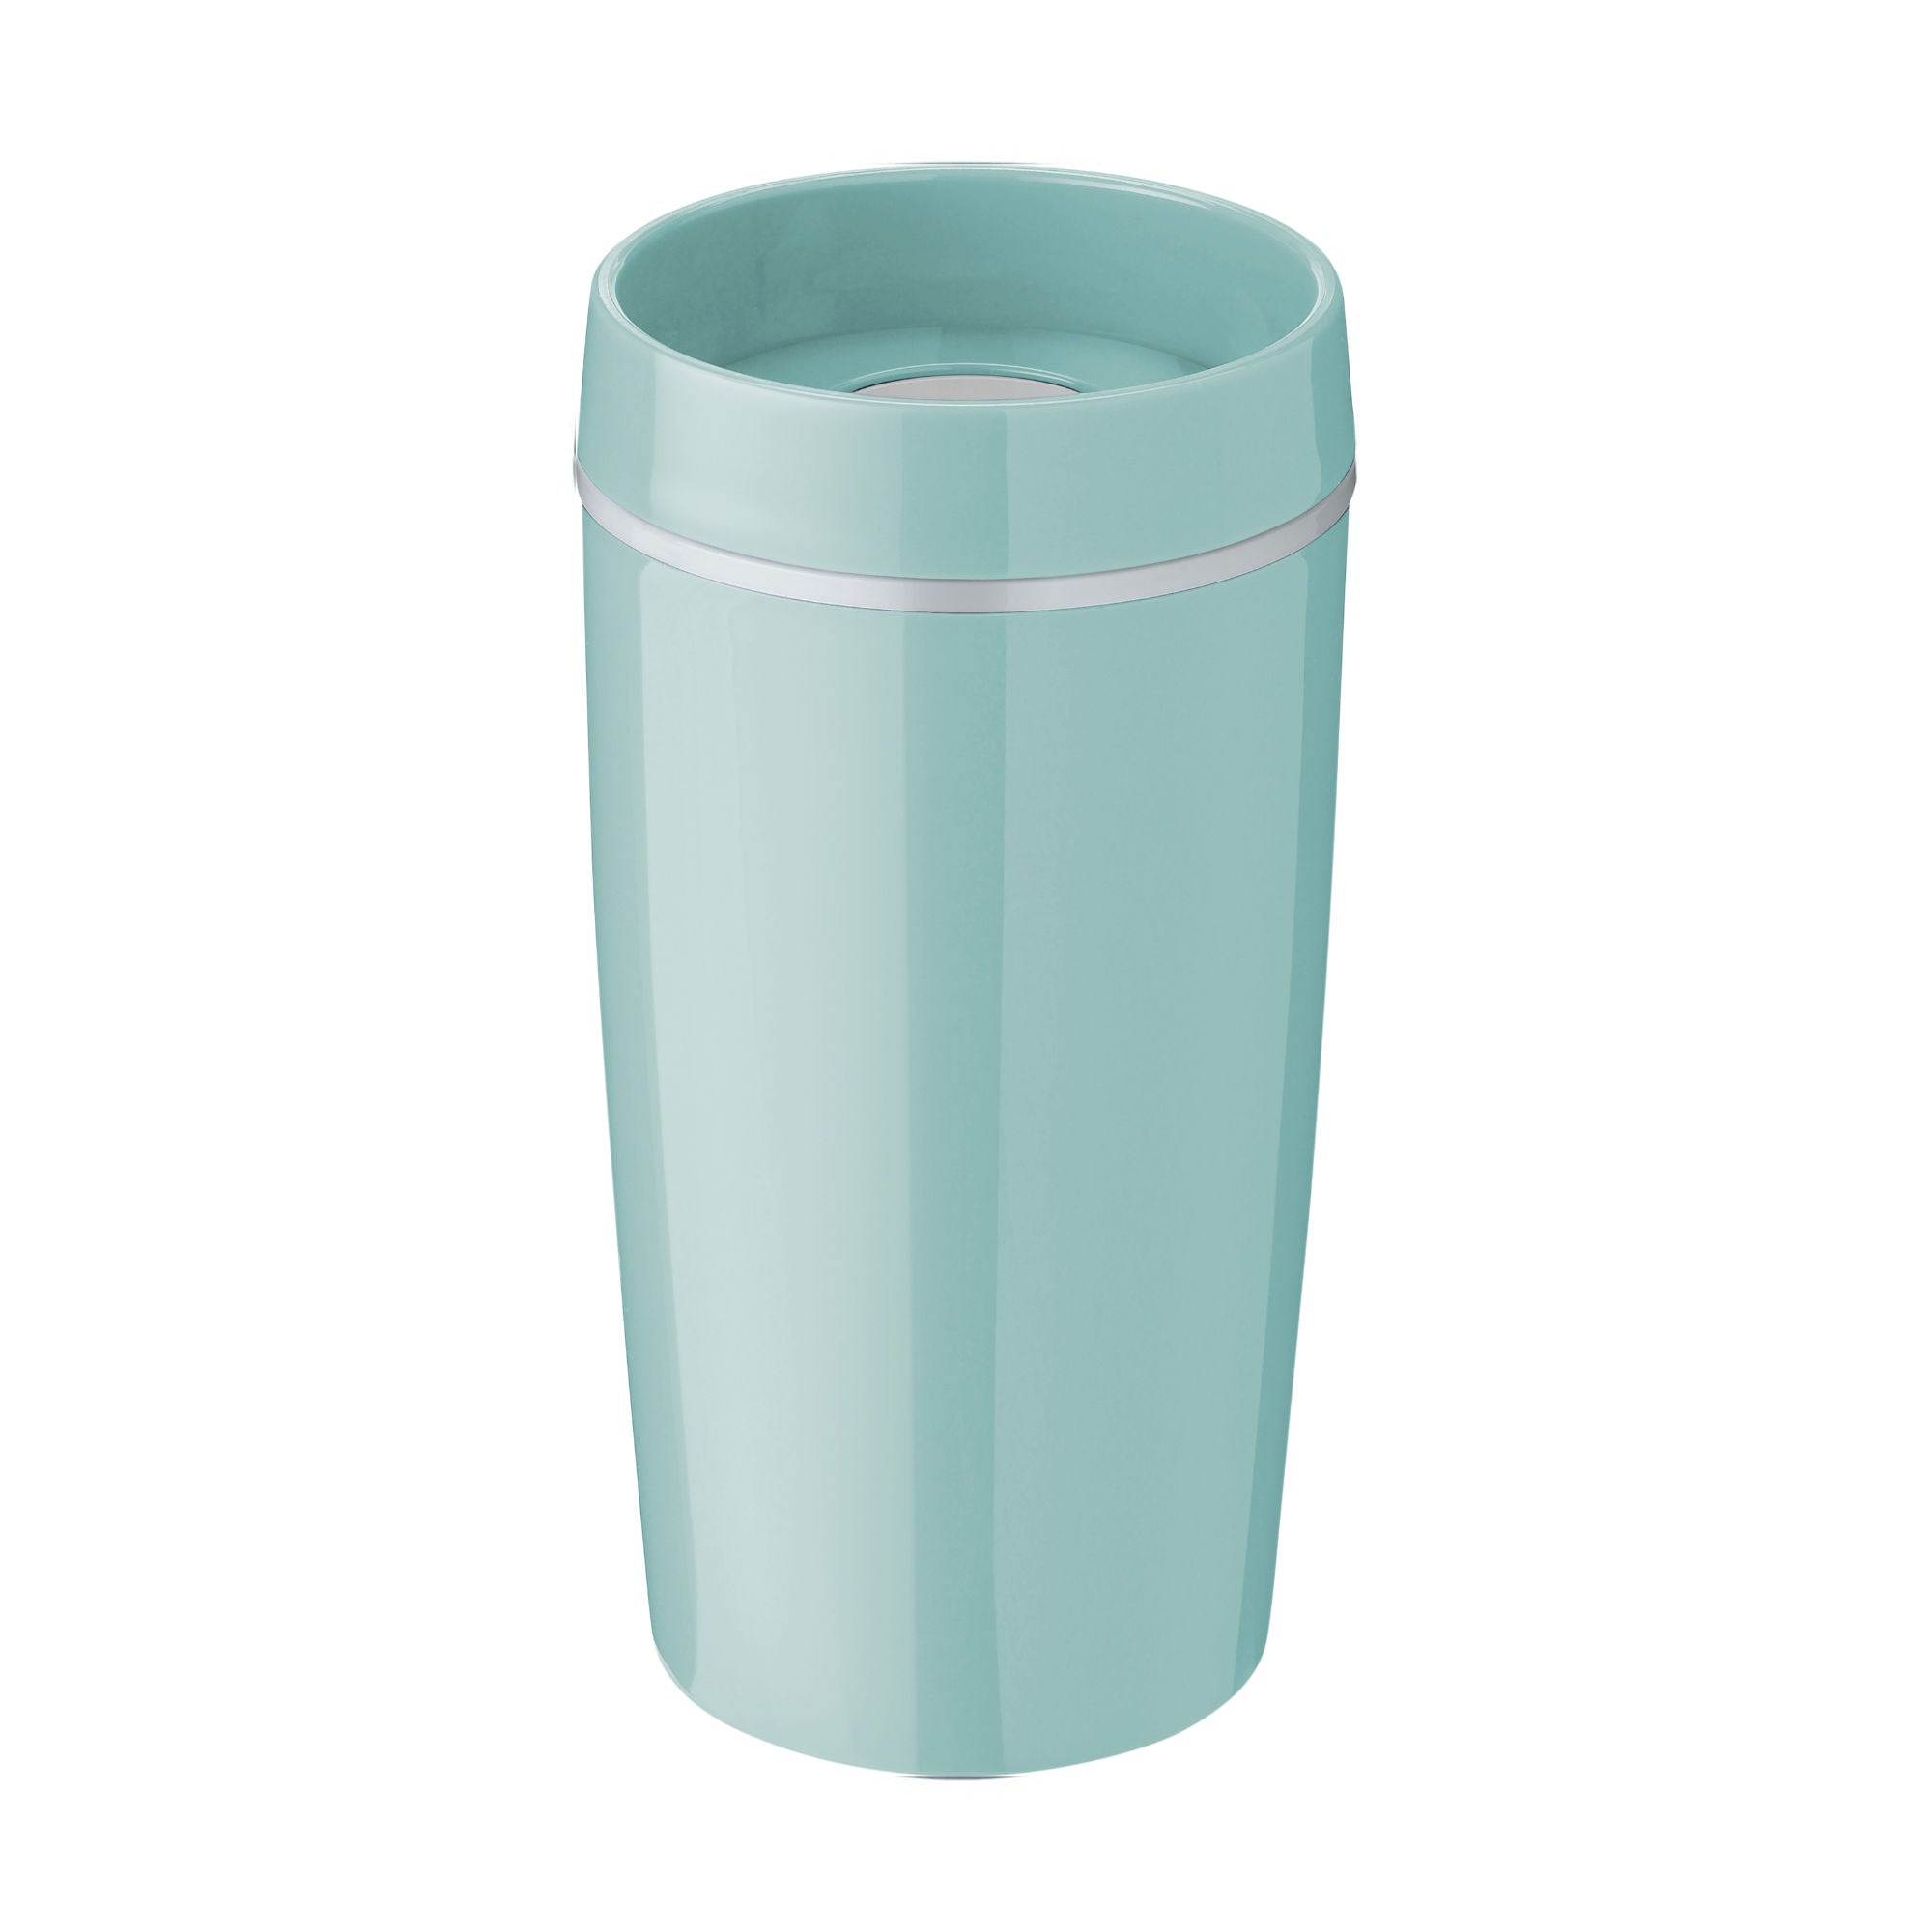 Stelton Bring-It To-Go Mug 340ml , Green